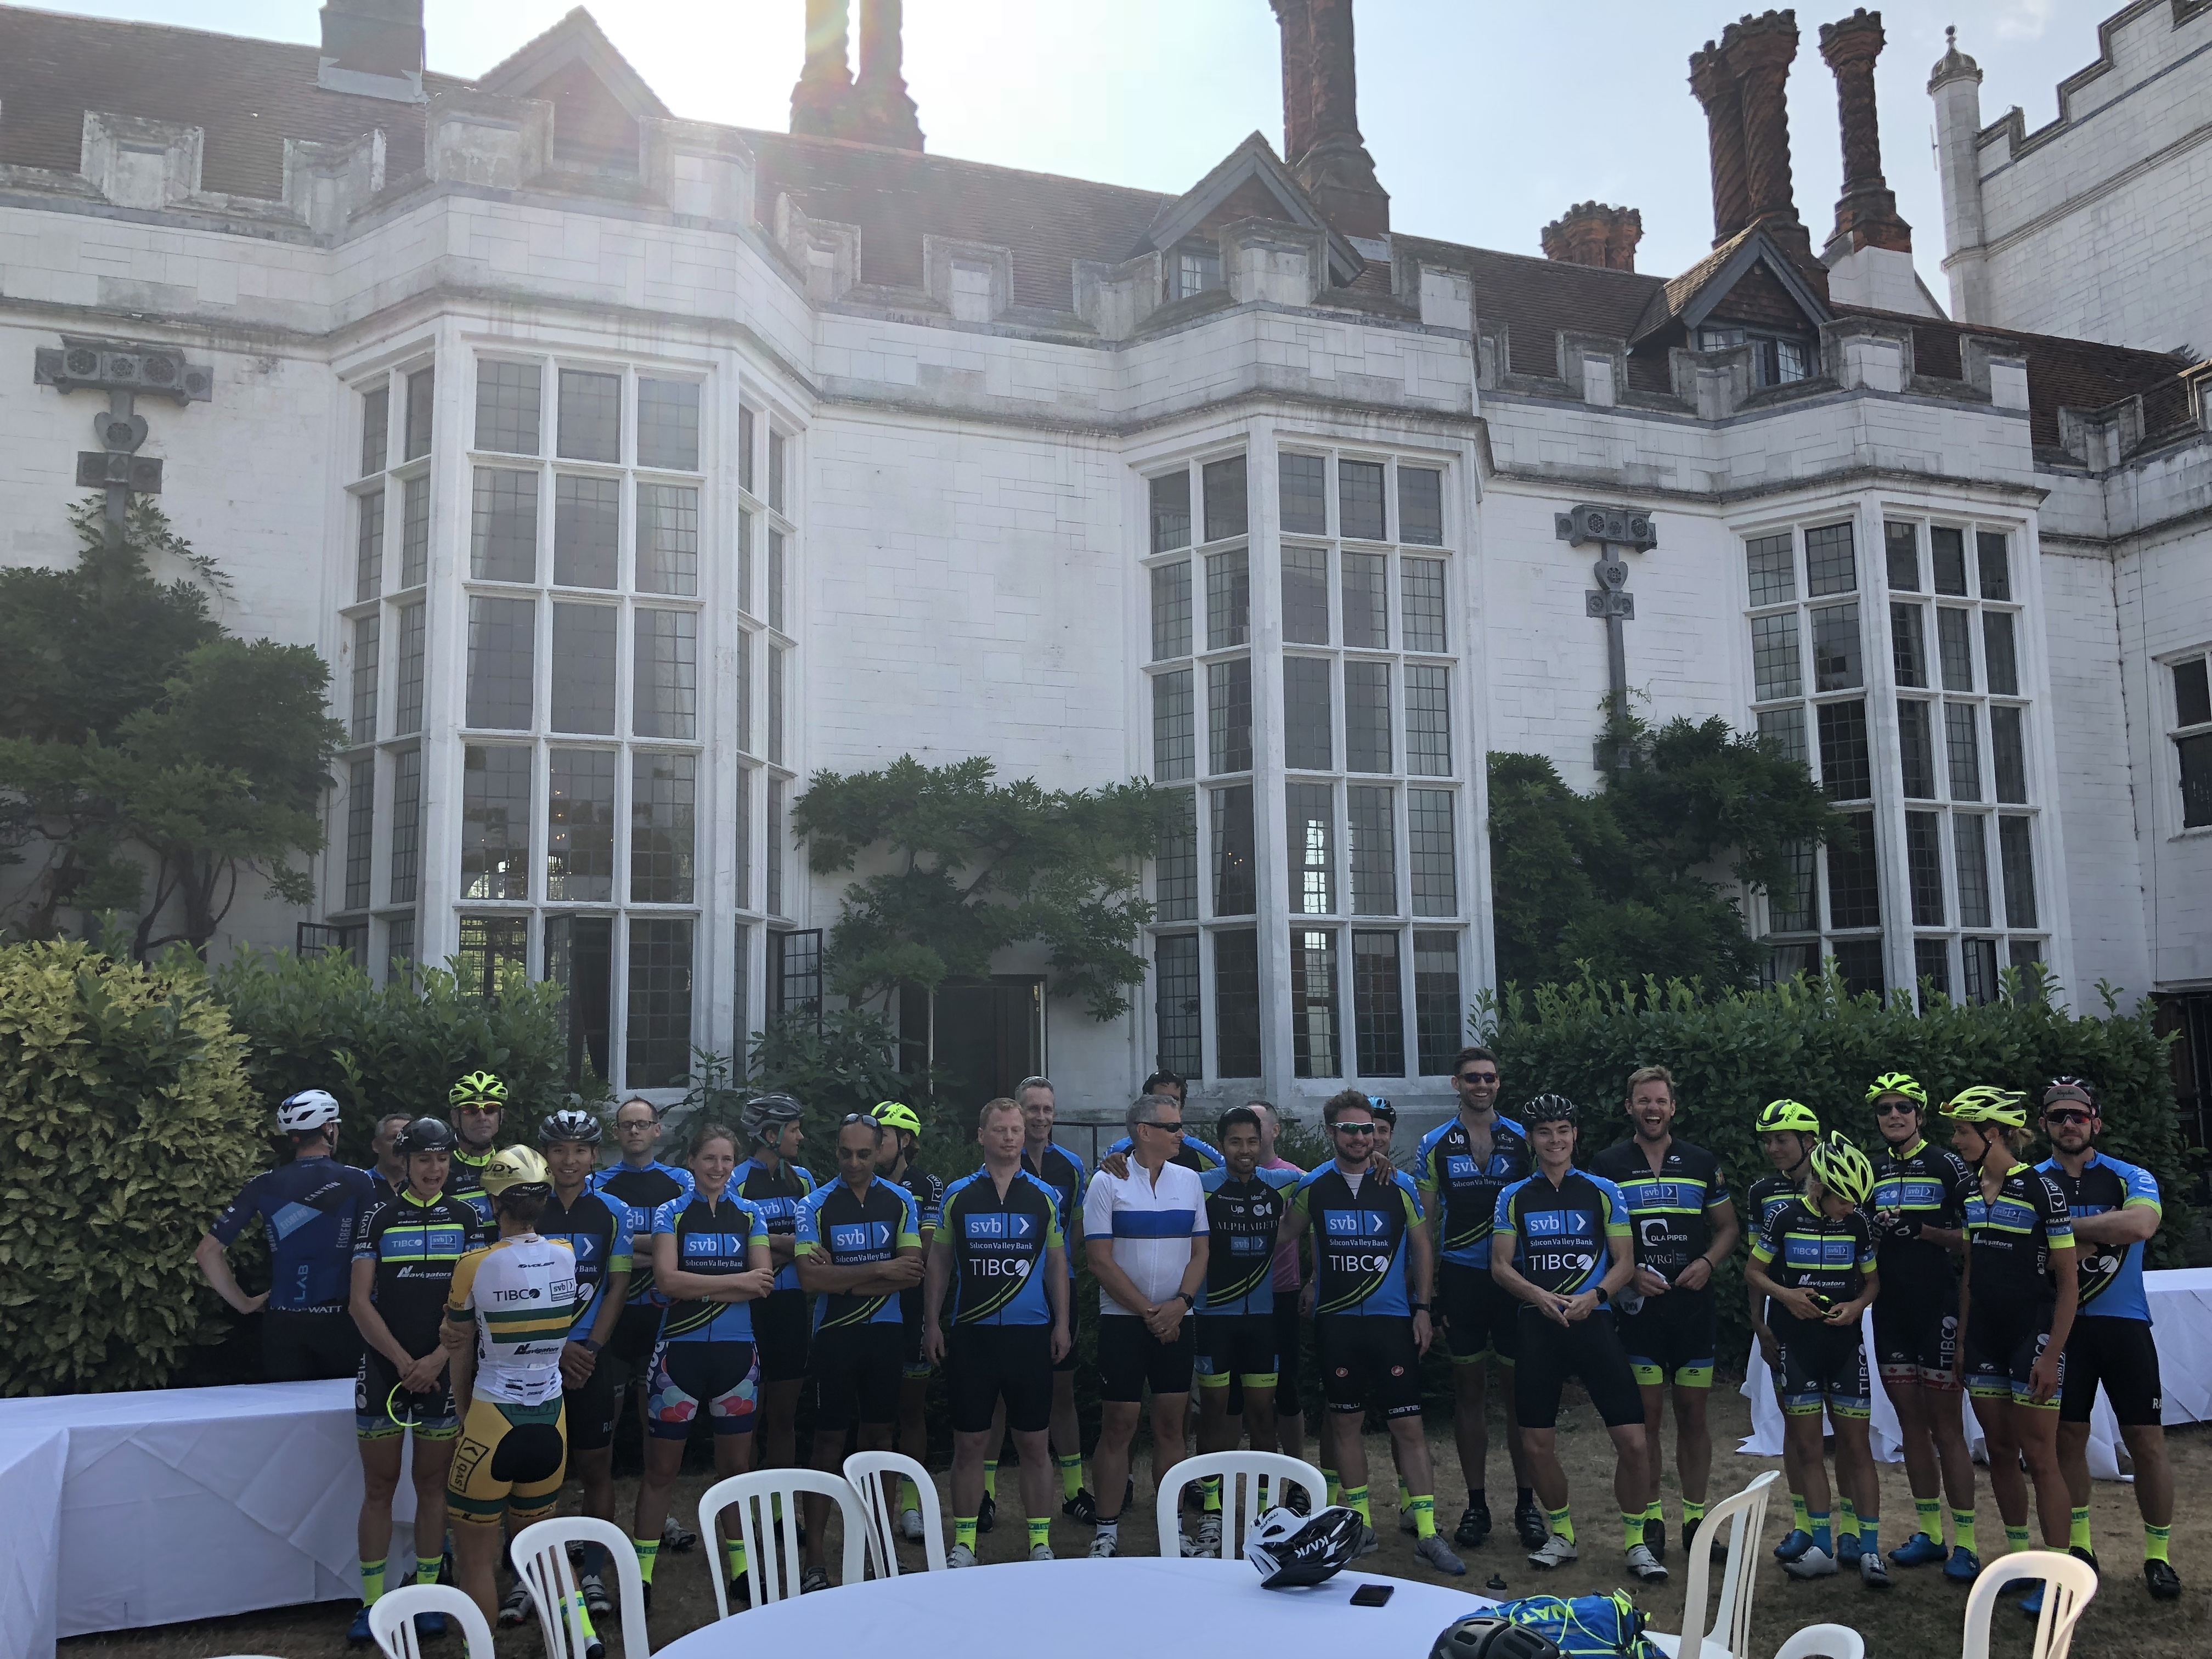 Members of Silicon valley bank pose for a corporate cycling trip photo